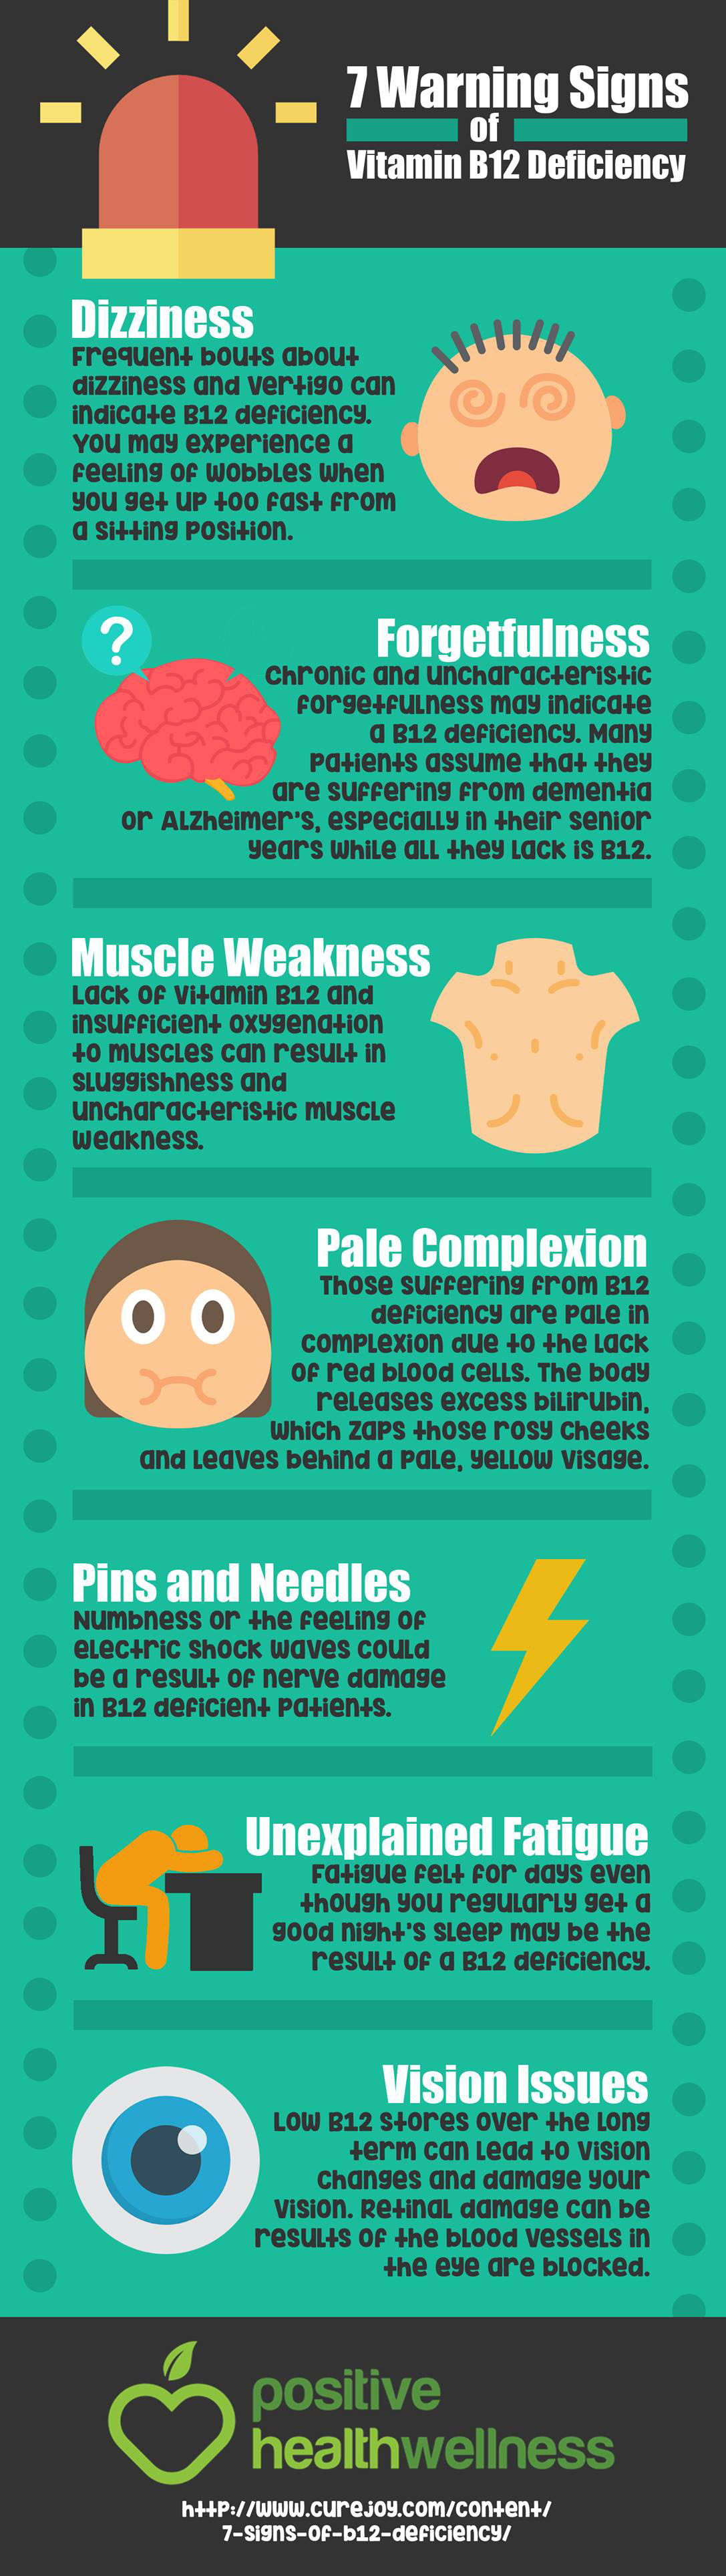 Vitamin B12 Deficiency Infographic